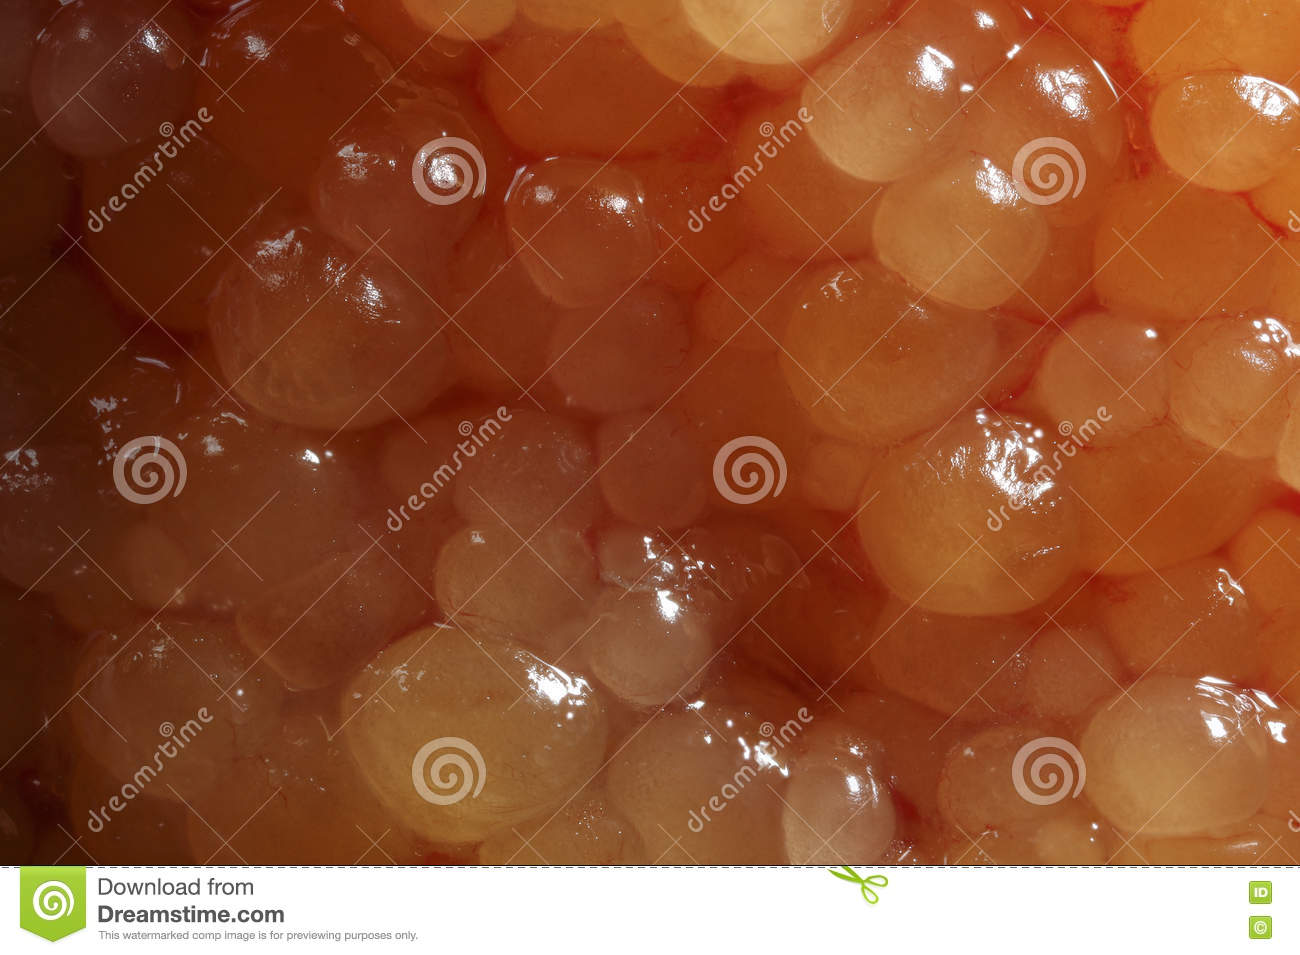 Fish eggs from pike fish stock image. Image of fish, color - 80858231